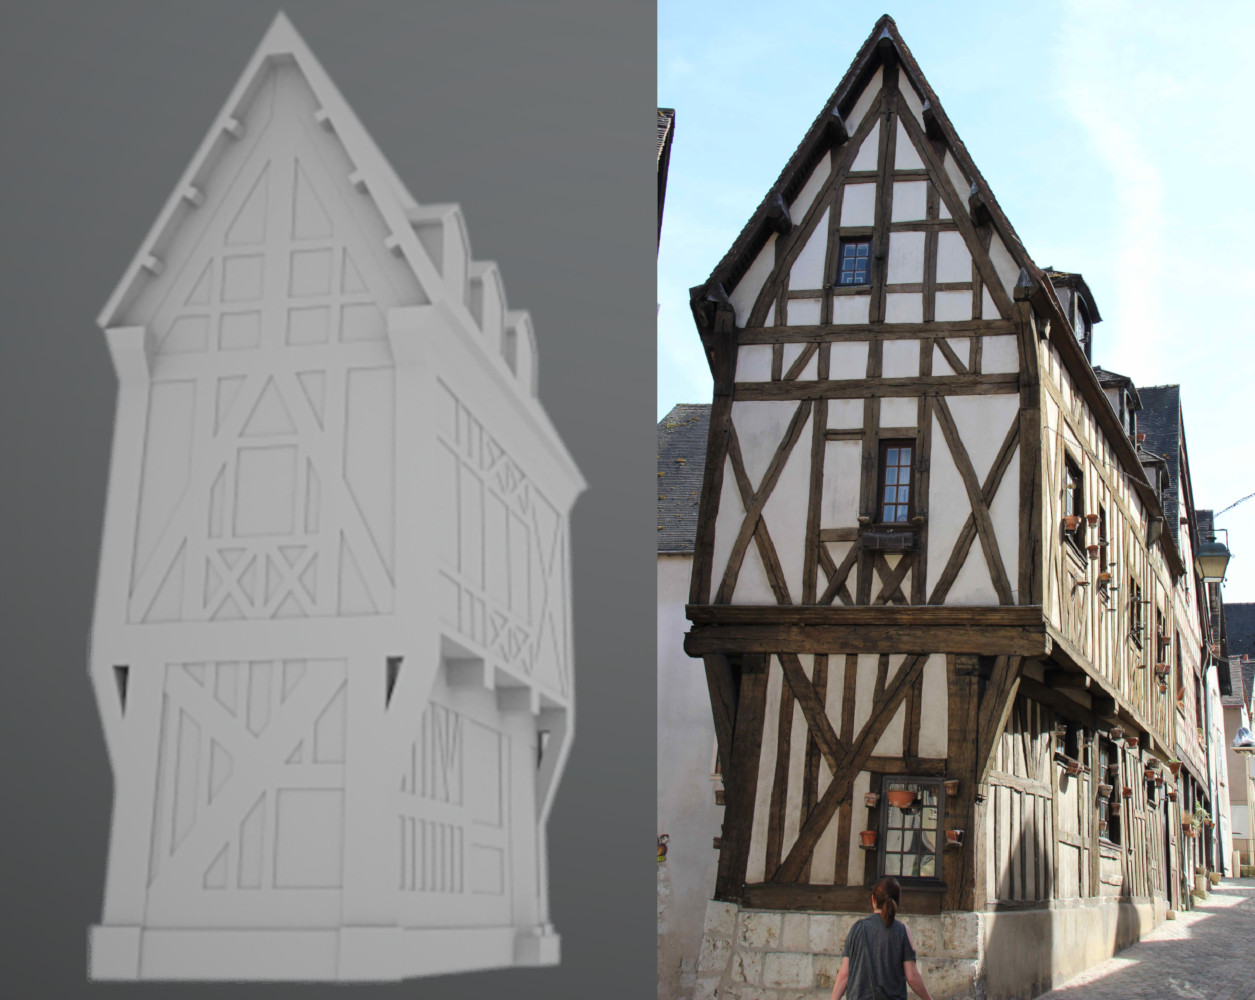 Workflow demonstrating the creation of a historical medieval european building model using digital 3D skills.